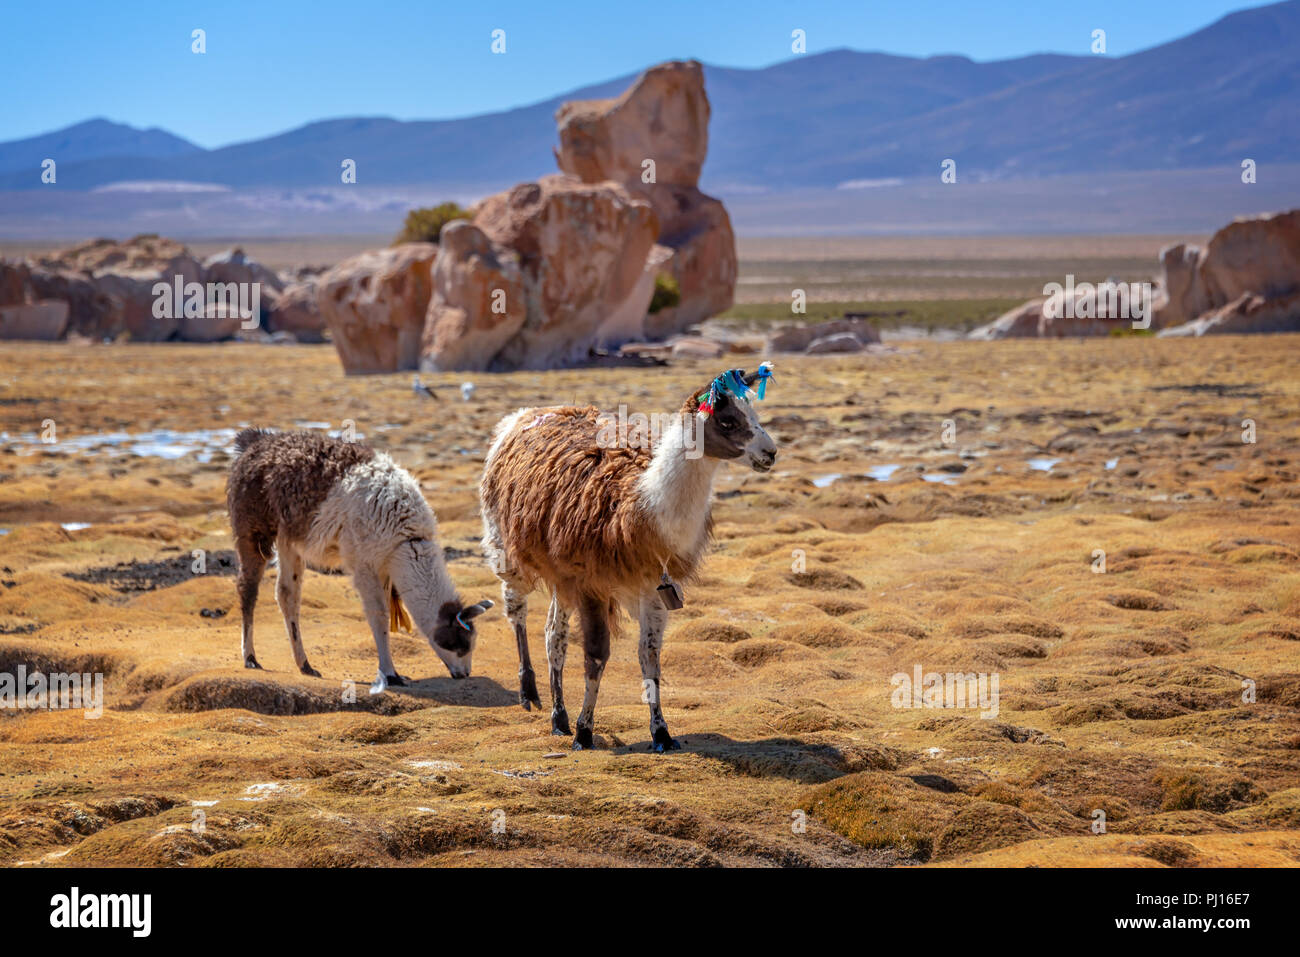 Domestic llamas grazing on the altiplano in Bolivia - Stock Image